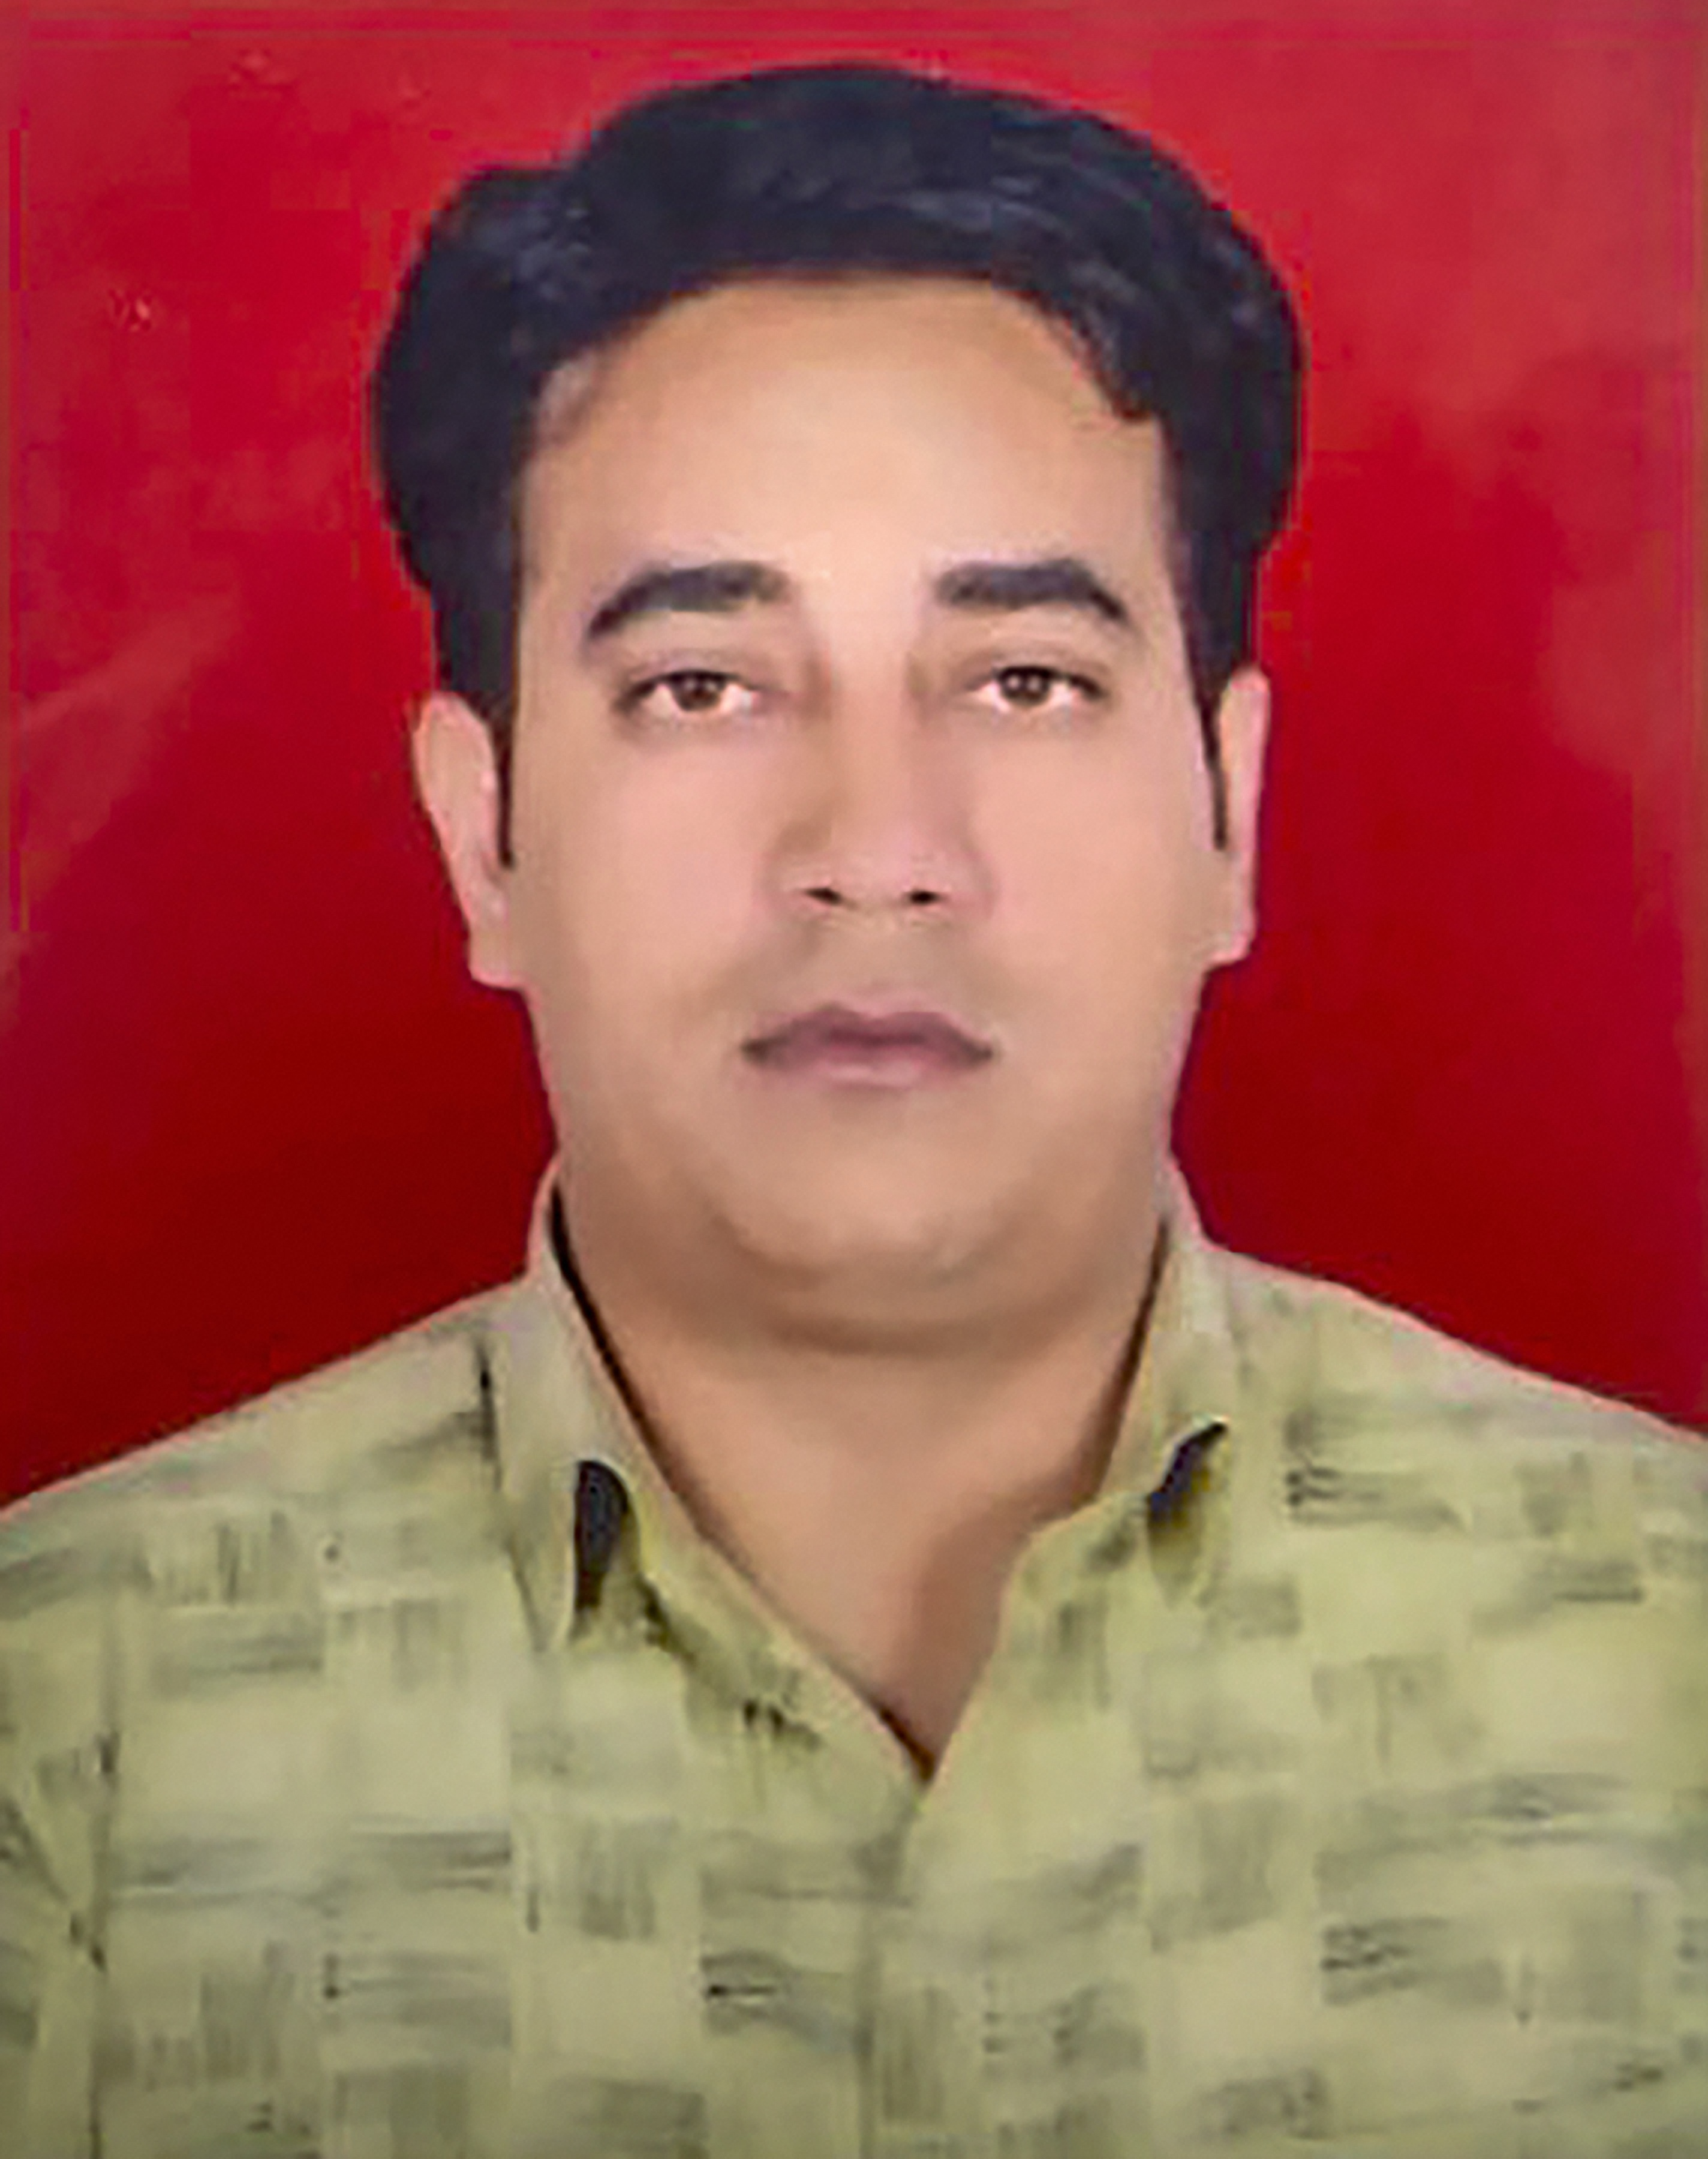 The AAP MLA, who was suspended by the party on February 27, had denied any links to the killing of the IB officer Ankit Sharma (in picture)—a claim made by the family of the slain officer.